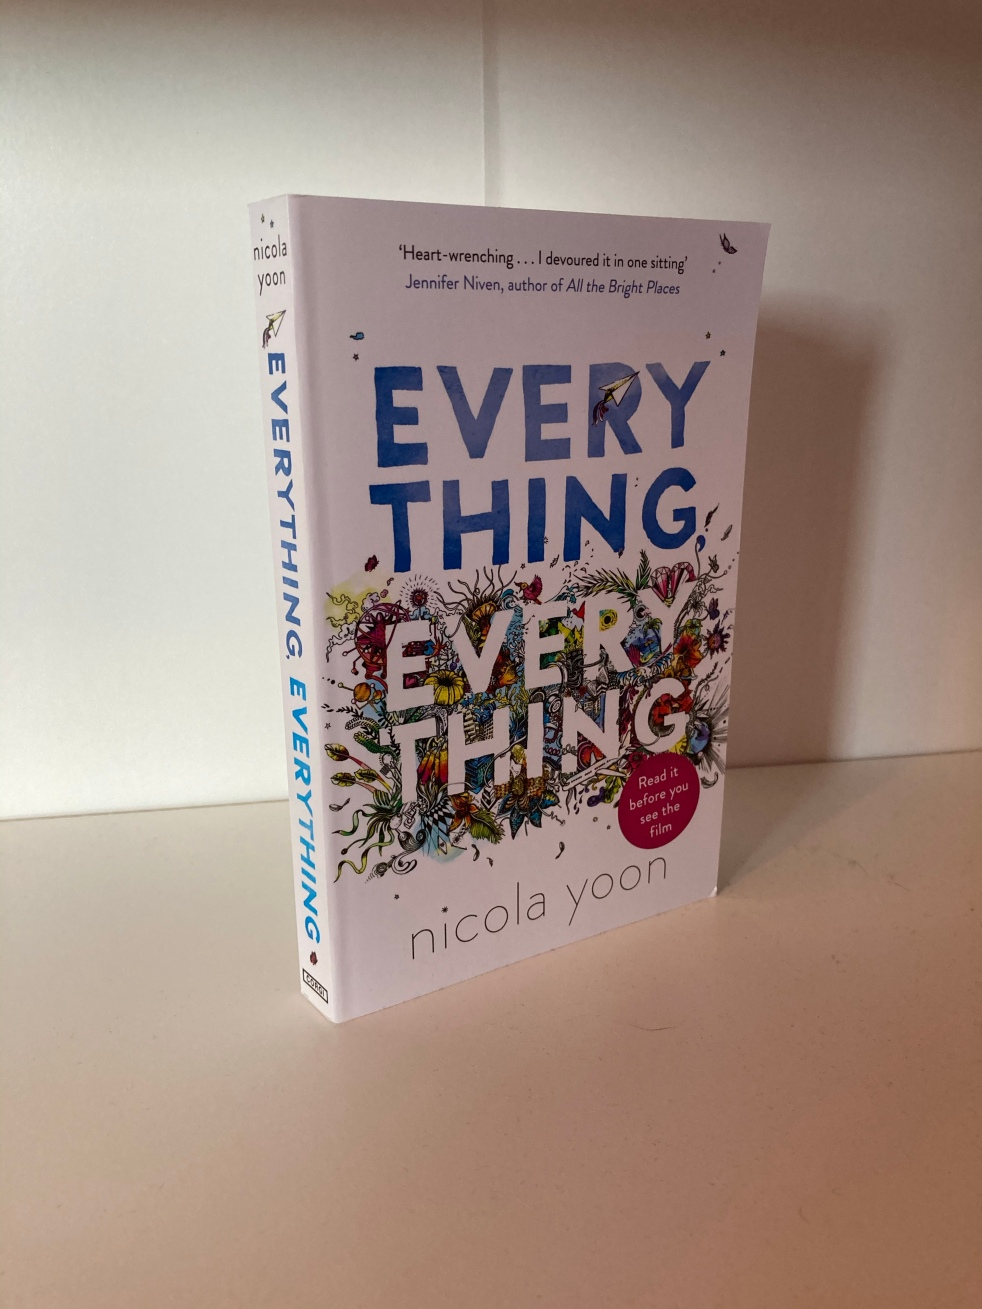 The cover of Everything, Everything by Nicola Yoon